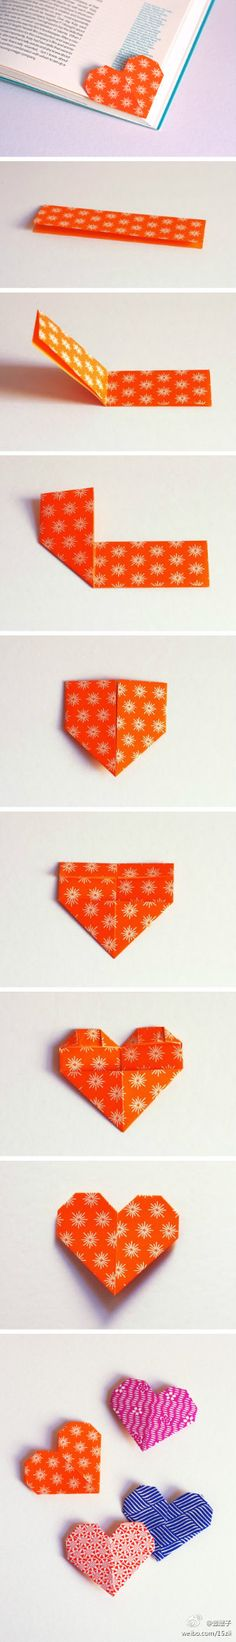 Origami- Origami sabine v.Appeldorn sabinevappeldor Kreatives Origami sabine v.Appeldorn Origami sabinevappeldor Origami Kreatives Origami sabine v. Diy Origami, Origami Paper, Diy Paper, Paper Crafting, Heart Origami, Origami Tutorial, Origami Ball, Origami Instructions, Origami Boxes